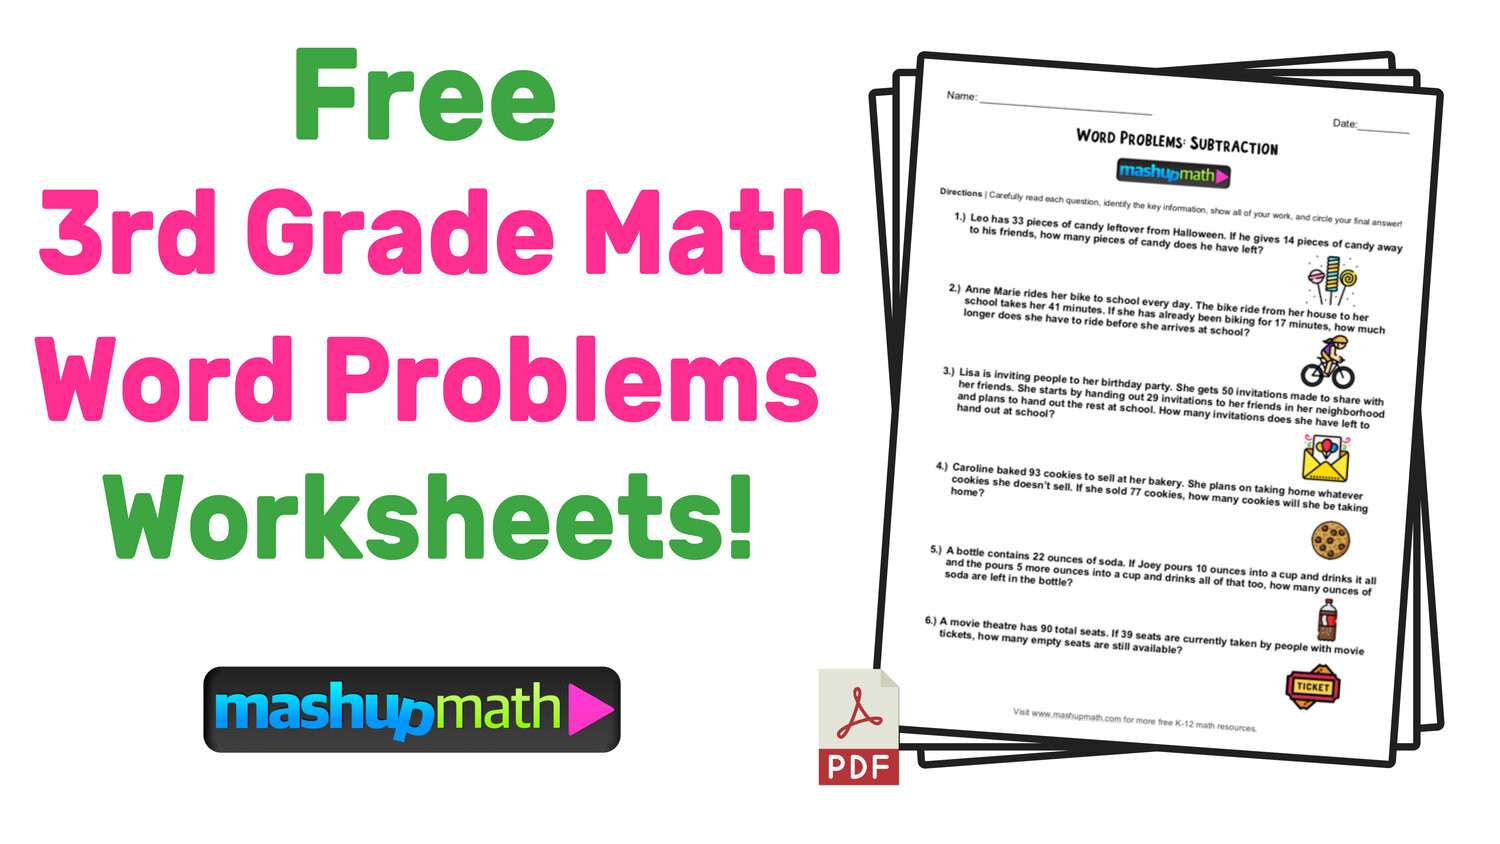 Third Grade Fraction Word Problems 3rd Grade Math Word Problems Free Worksheets with Answers